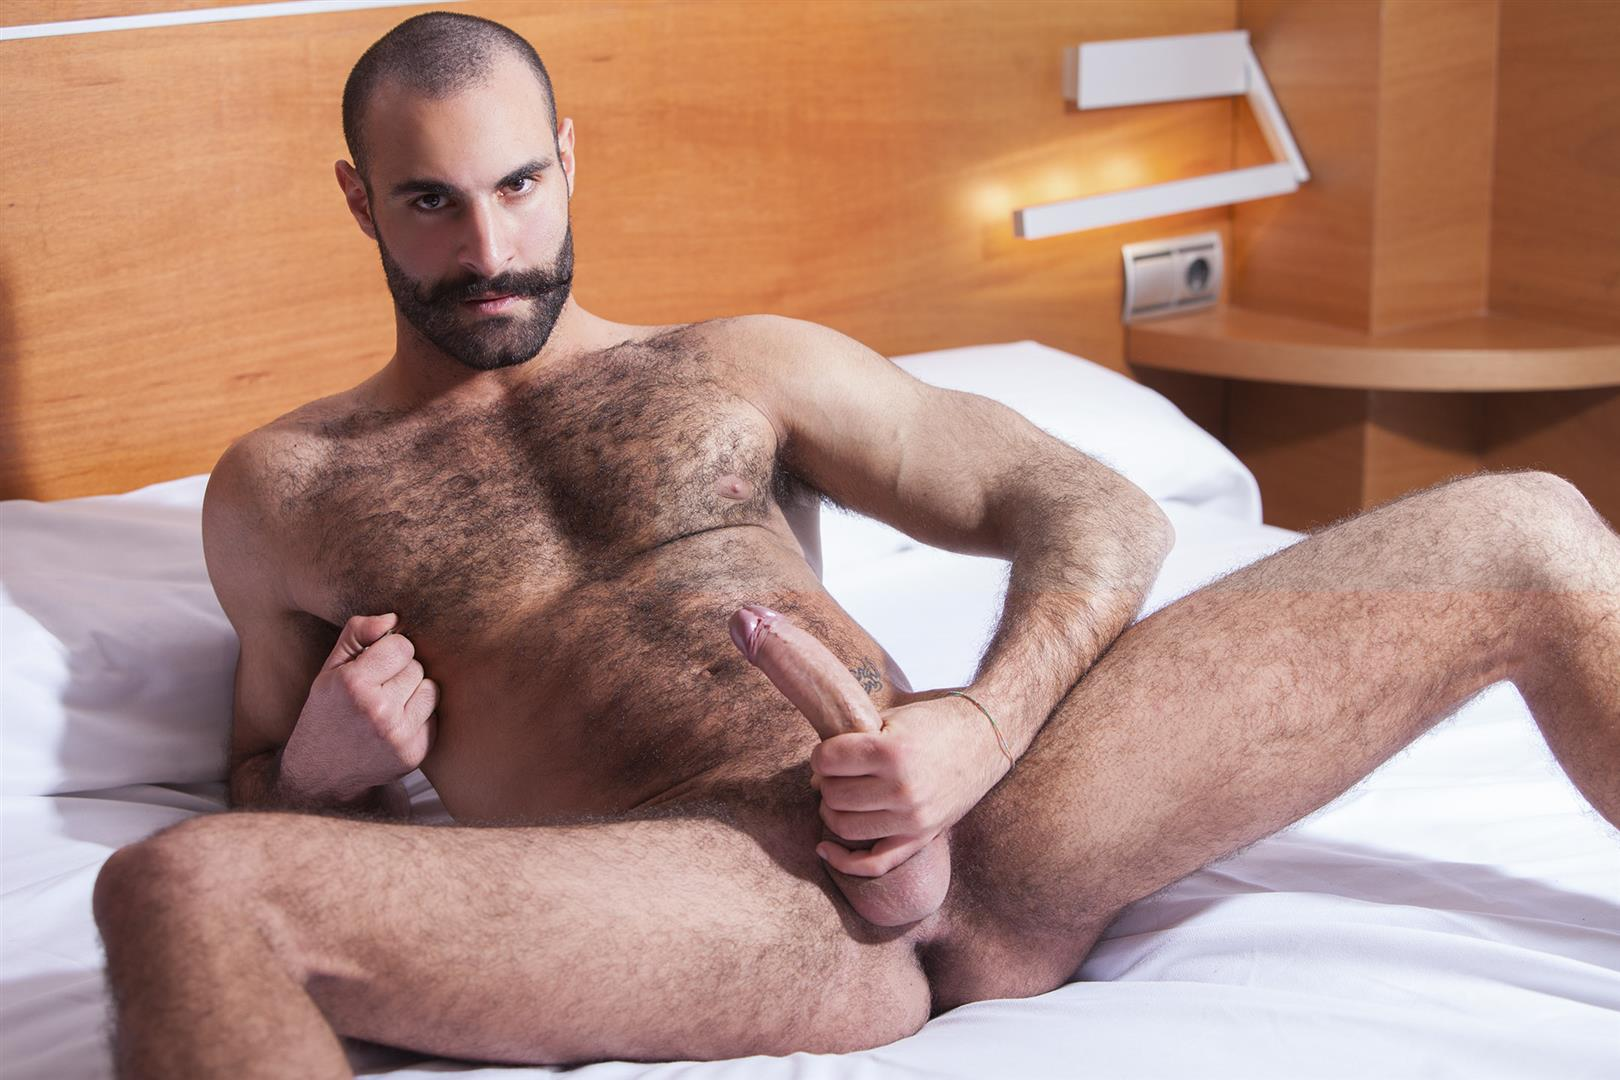 Fuckermate-Jean-Frank-and-Paco-Hairy-Muscle-Hunks-With-Big-Uncut-Cocks-Fucking-Amateur-Gay-Porn-17 Hairy Muscle Italian Hunks With Big Uncut Cocks Fucking Rough